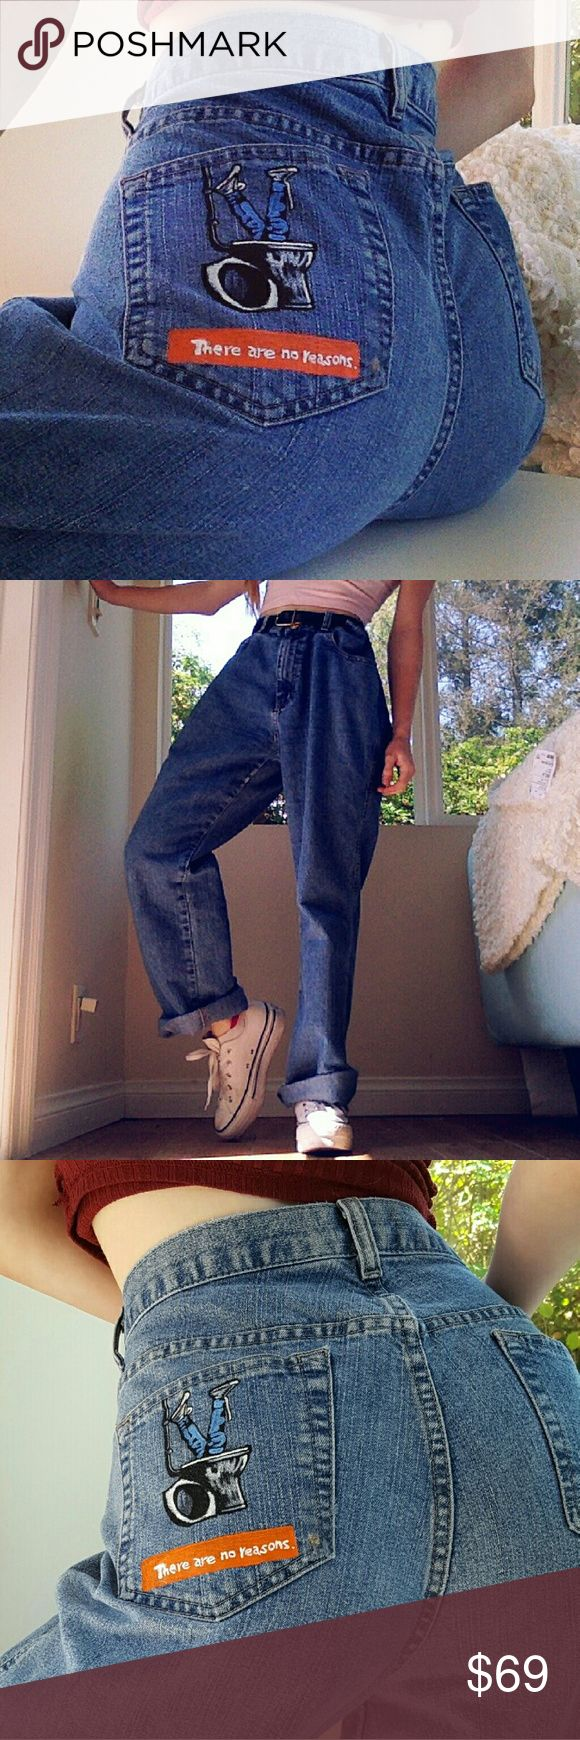 HANDPAINTED TRAINSPOTTING MOM JEANS Gahhh, these vintage Calvin Klein jeans have…